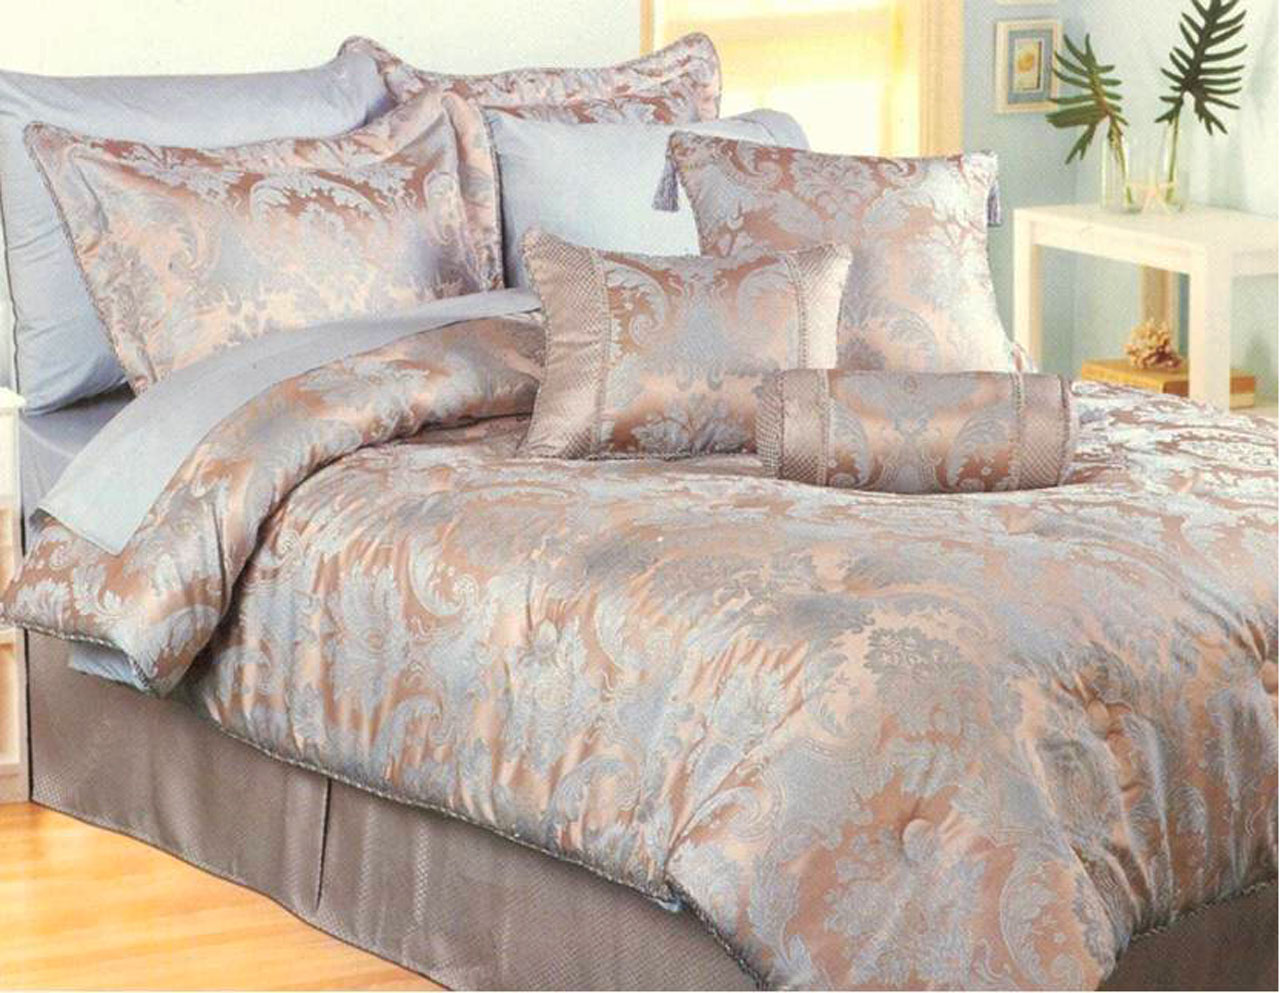 Ruched Duvet Cover | King Size Duvet Covers | Tumblr Duvet Covers